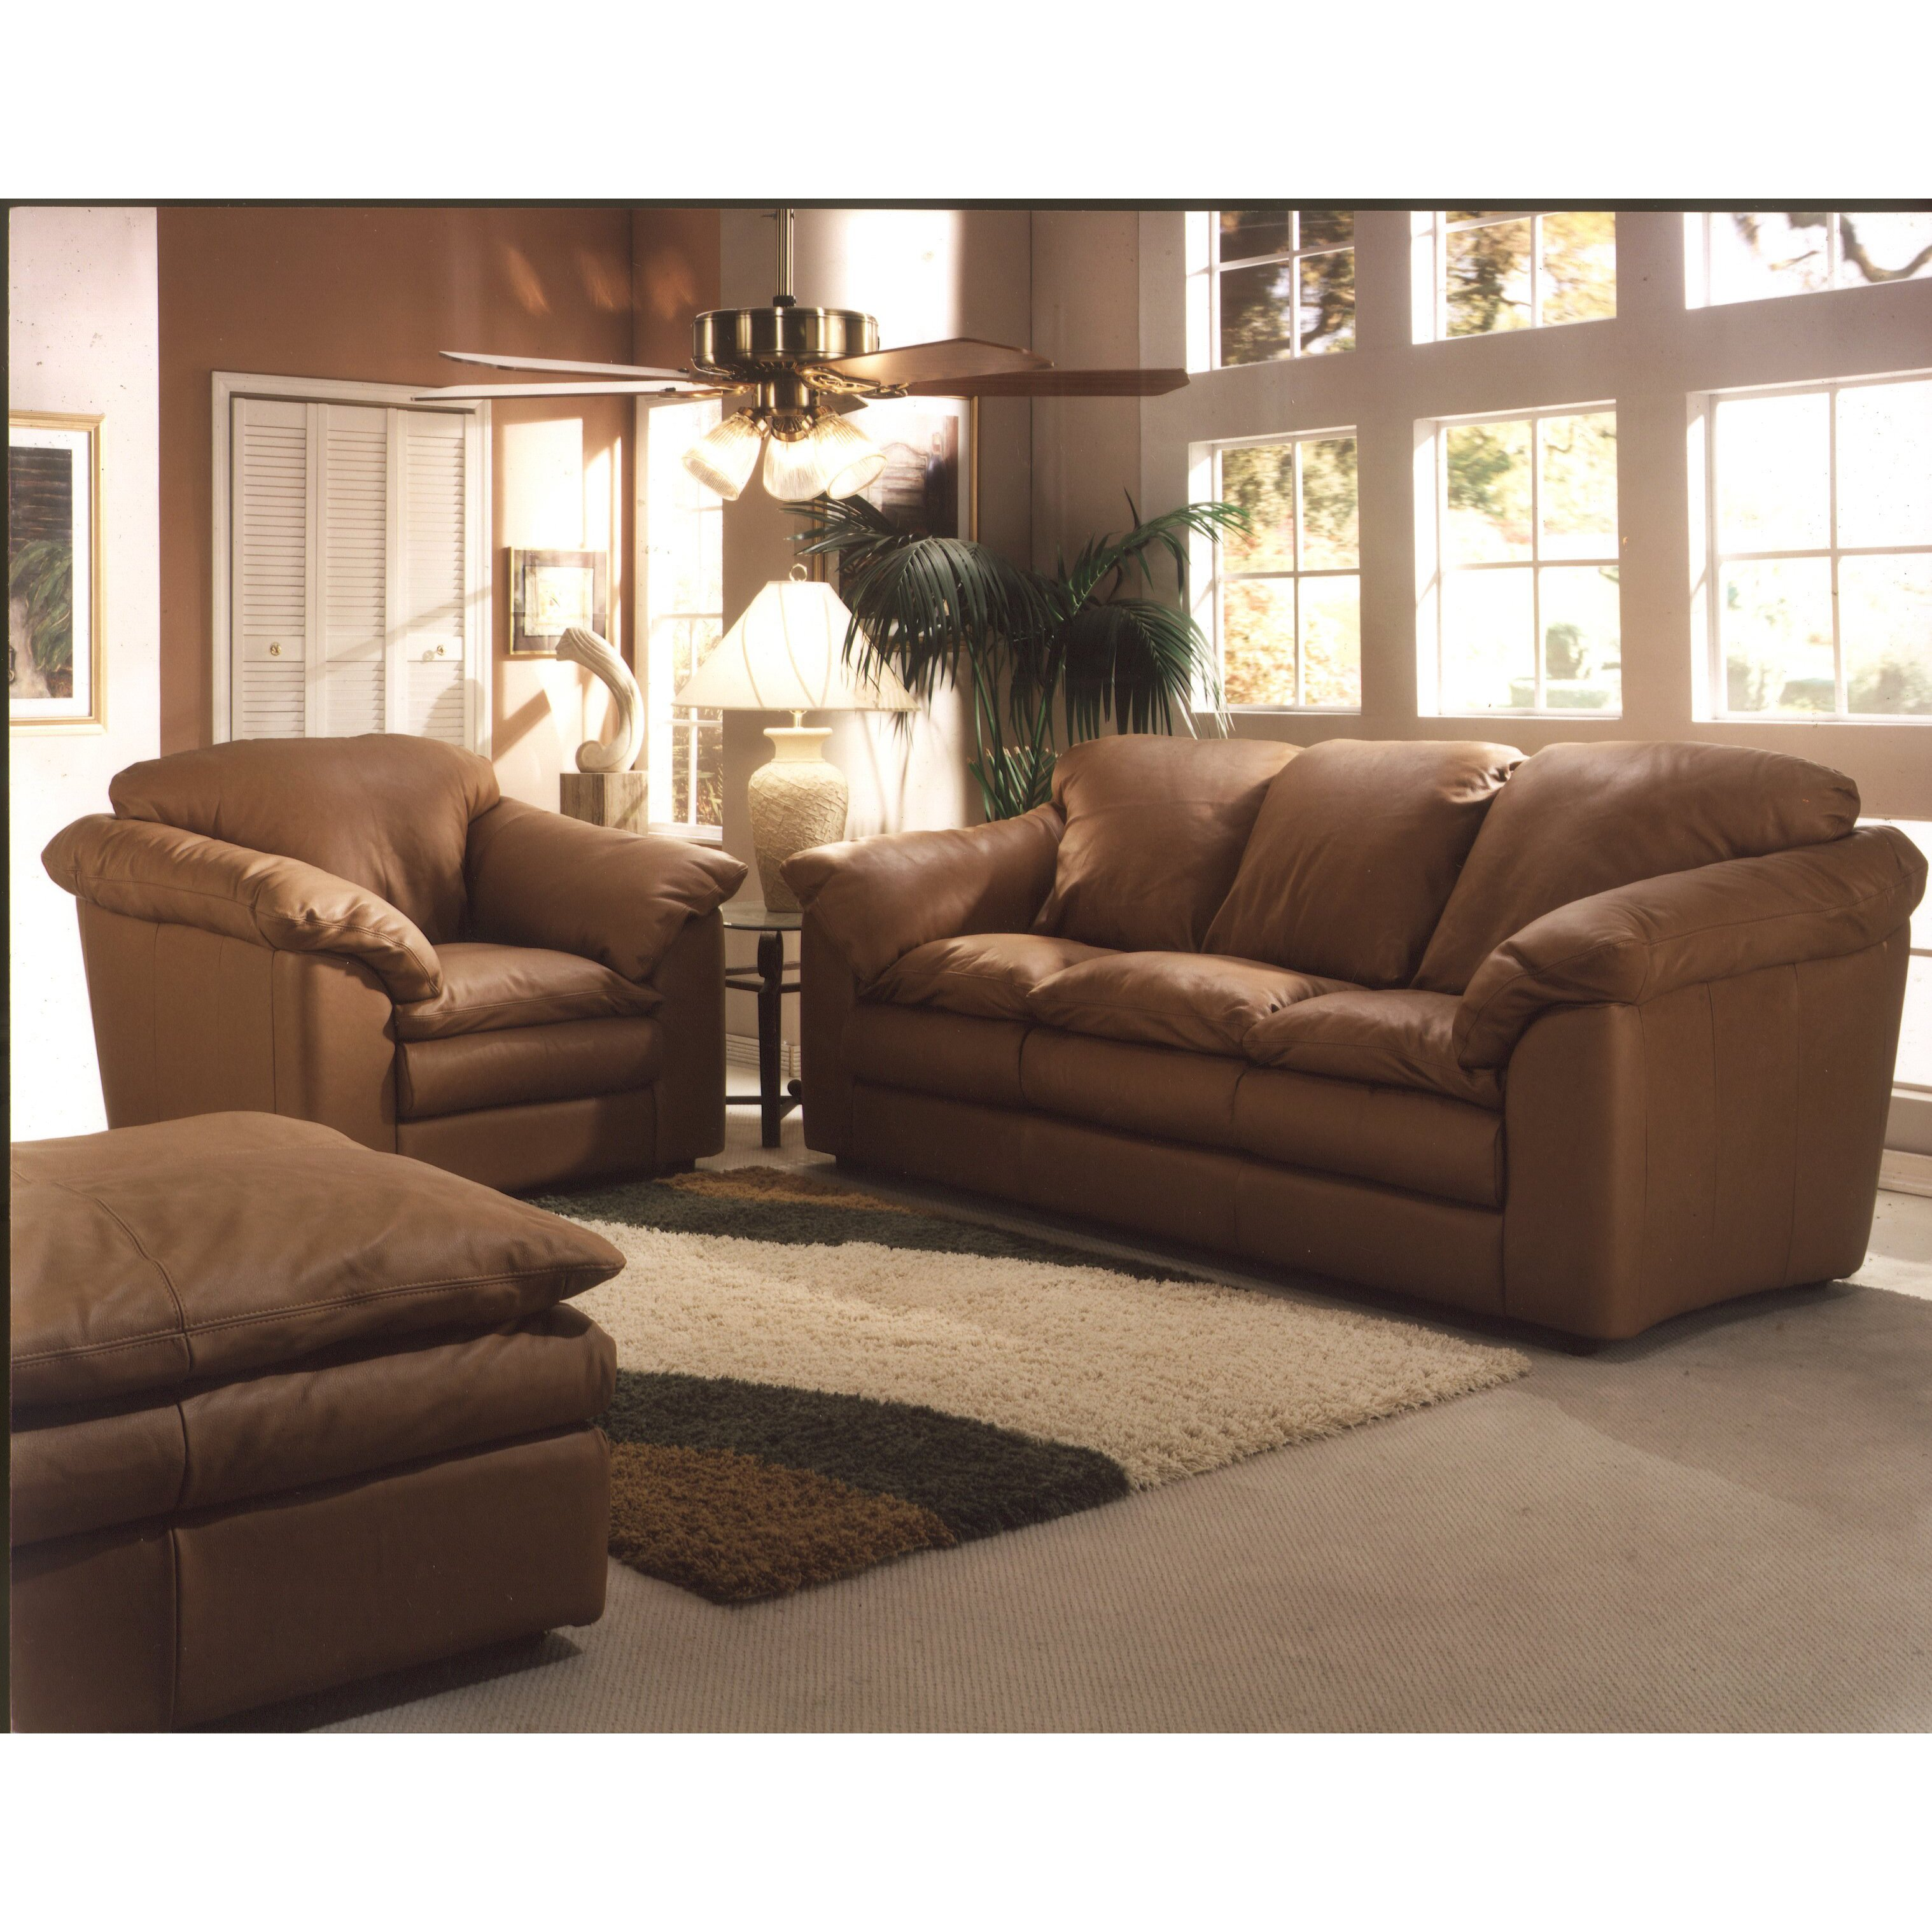 leather living room furniture omnia leather oregon 3 seat leather living room set 16651 | Oregon 3 Seat Leather Living Room Set